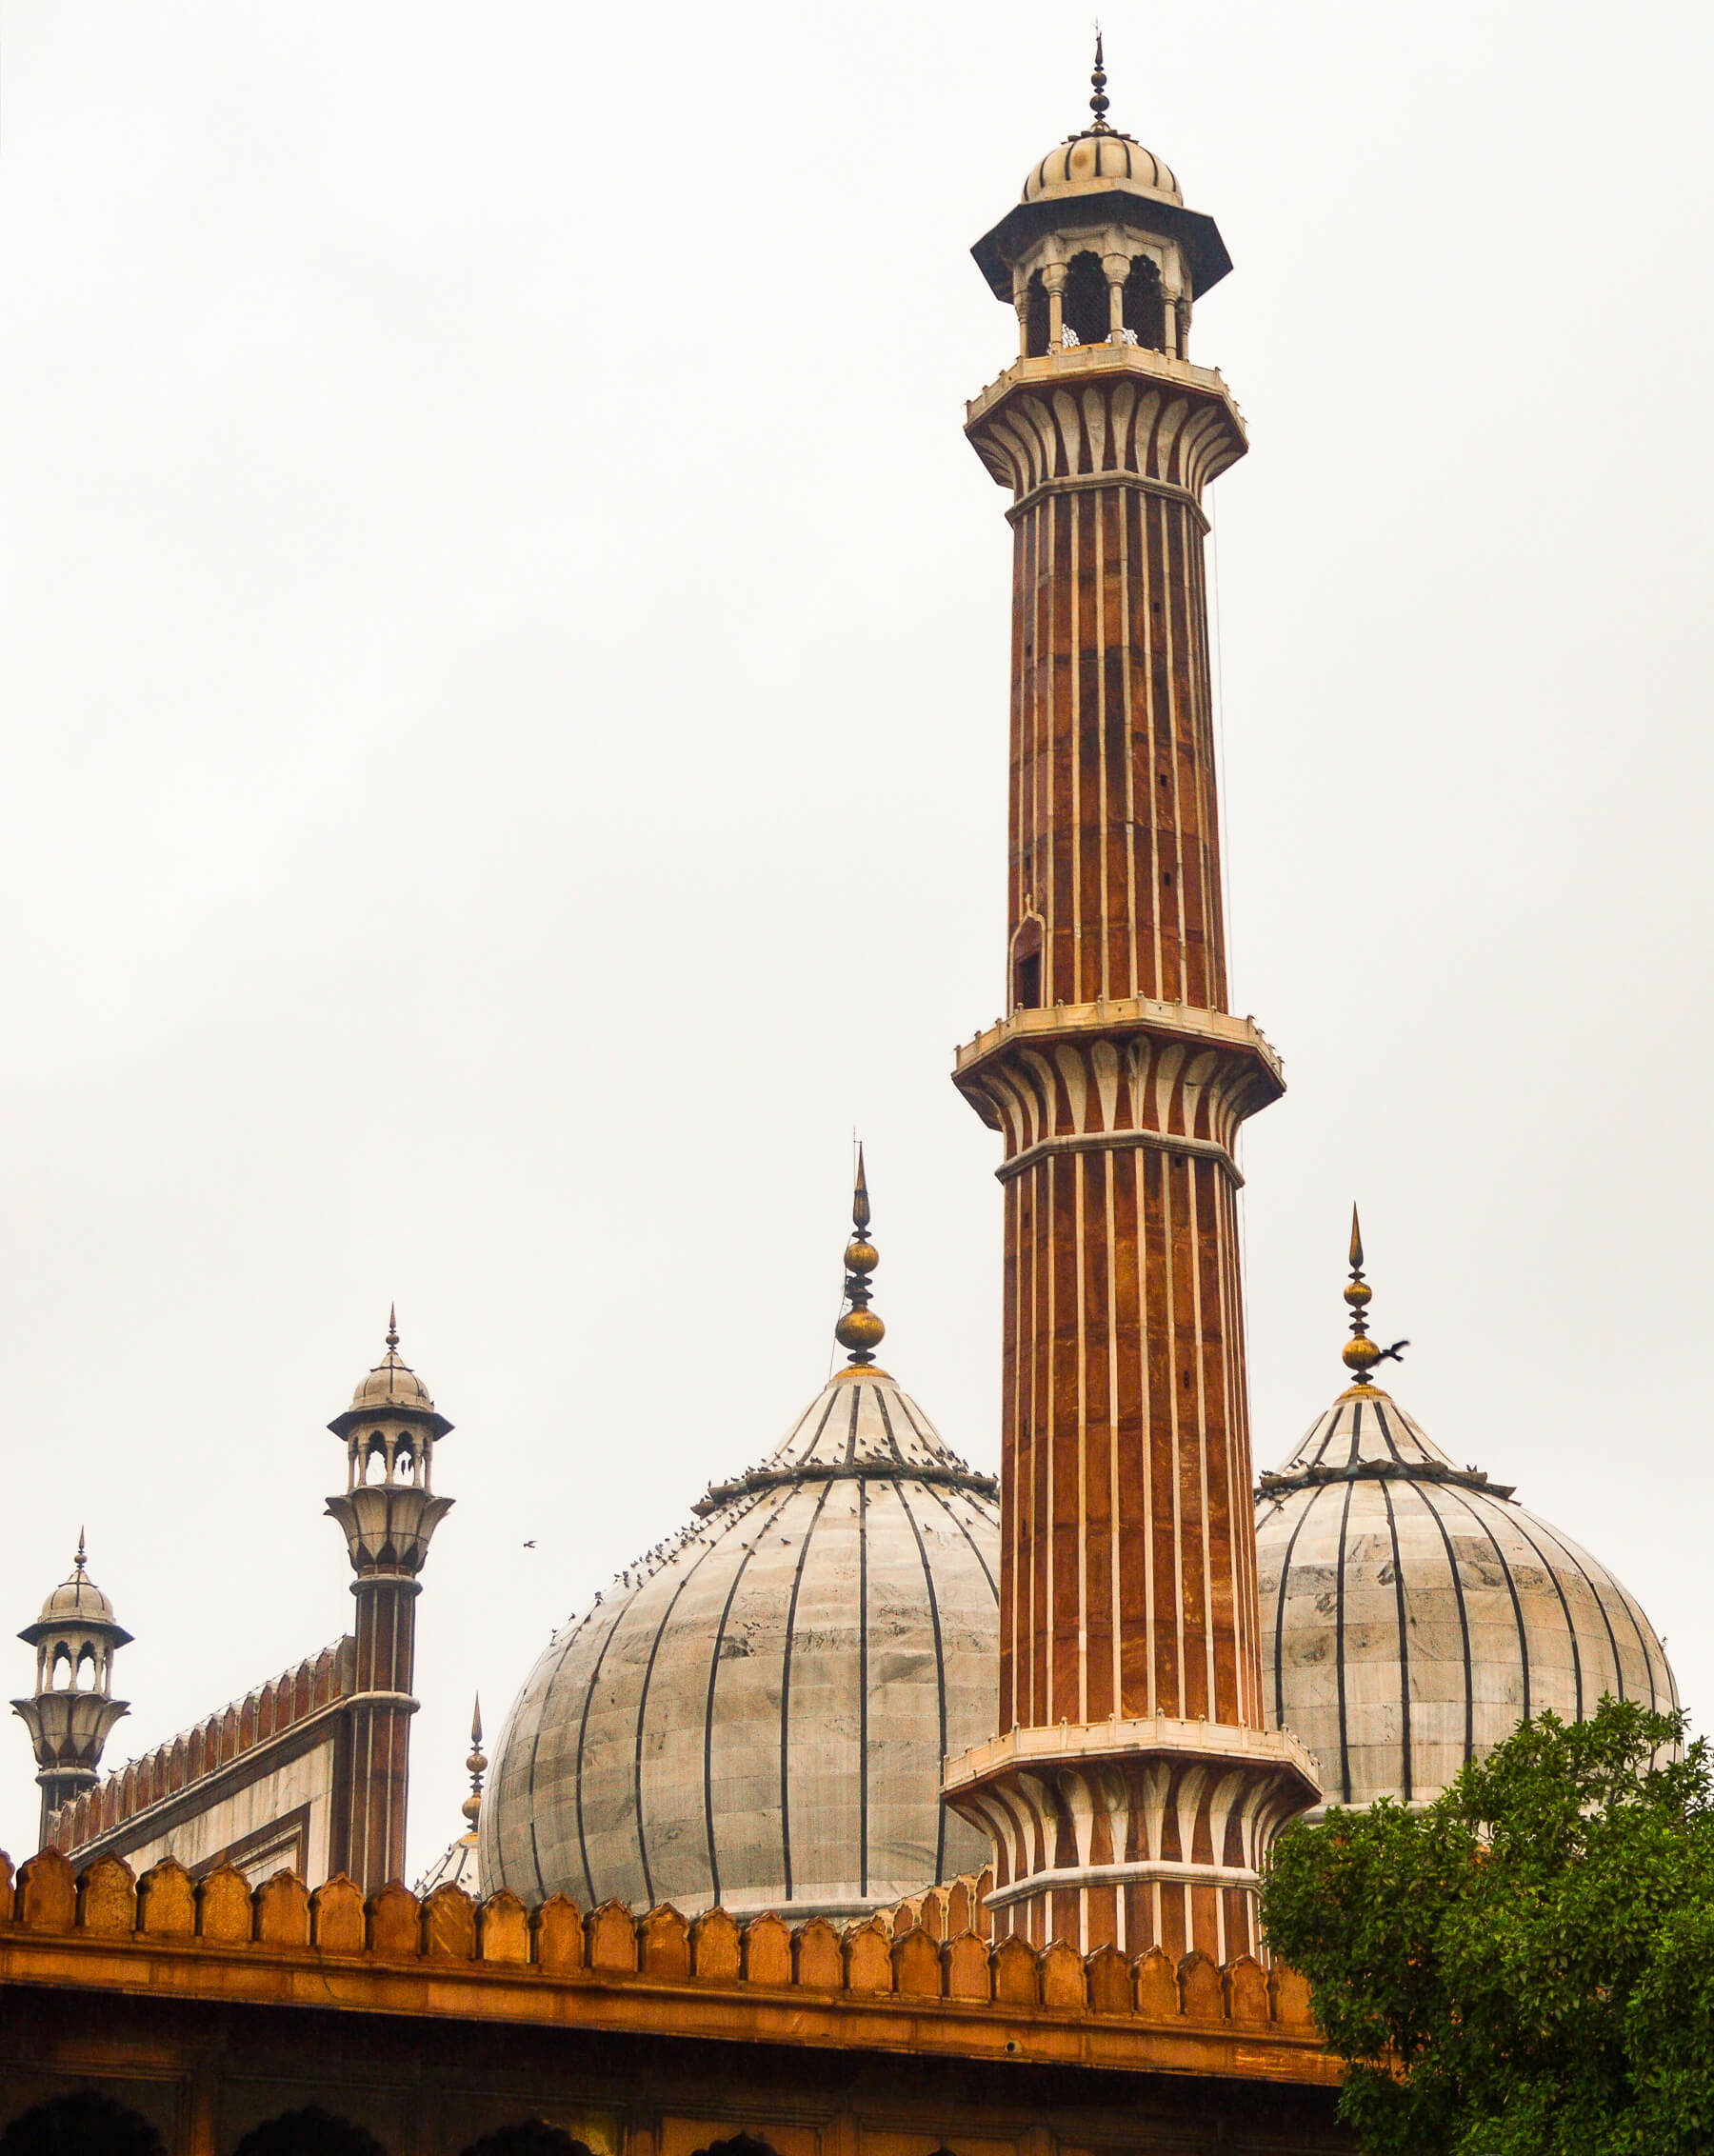 Rounded rooftop domes and pillars of a Red palace in India